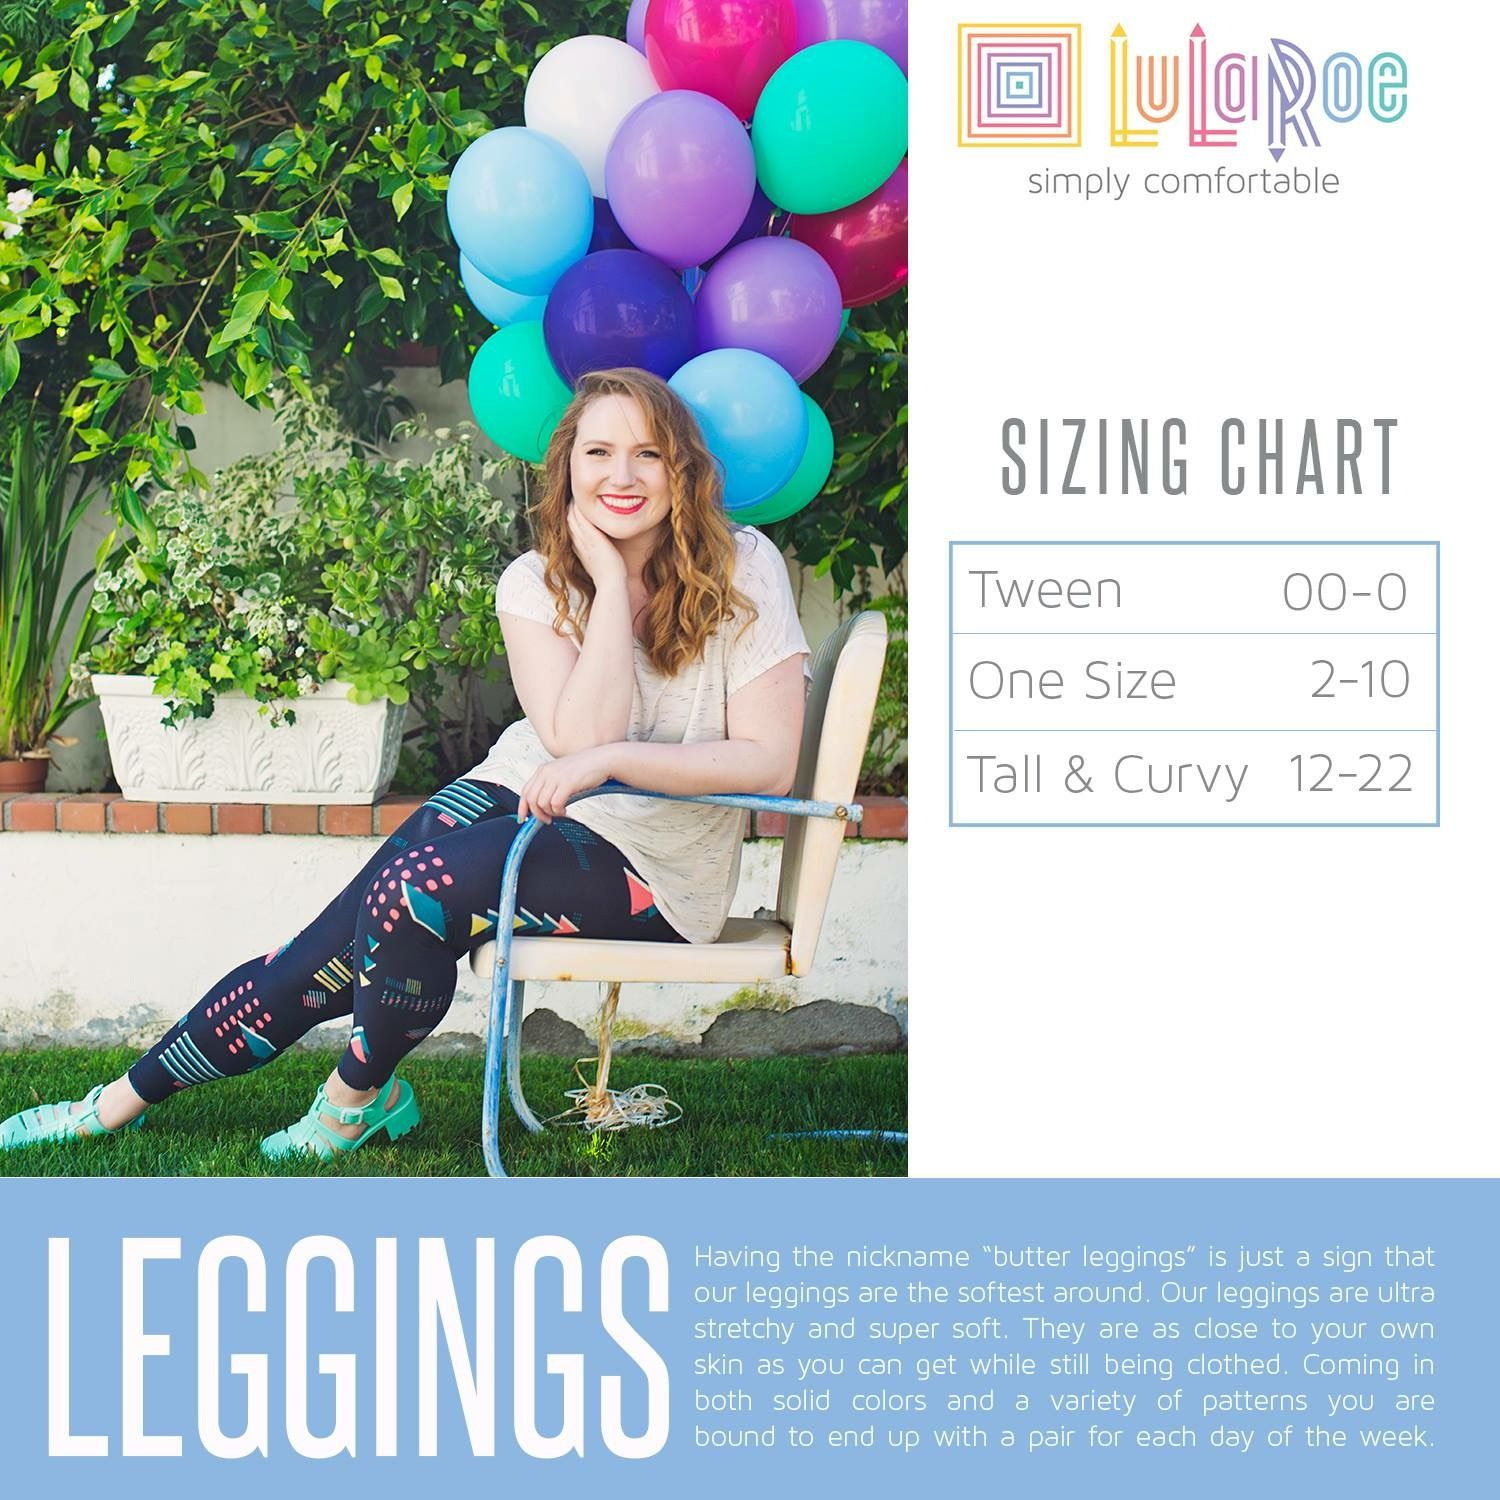 Lularoe Leggings Sizing Chart Size Chart For Tween One Size And